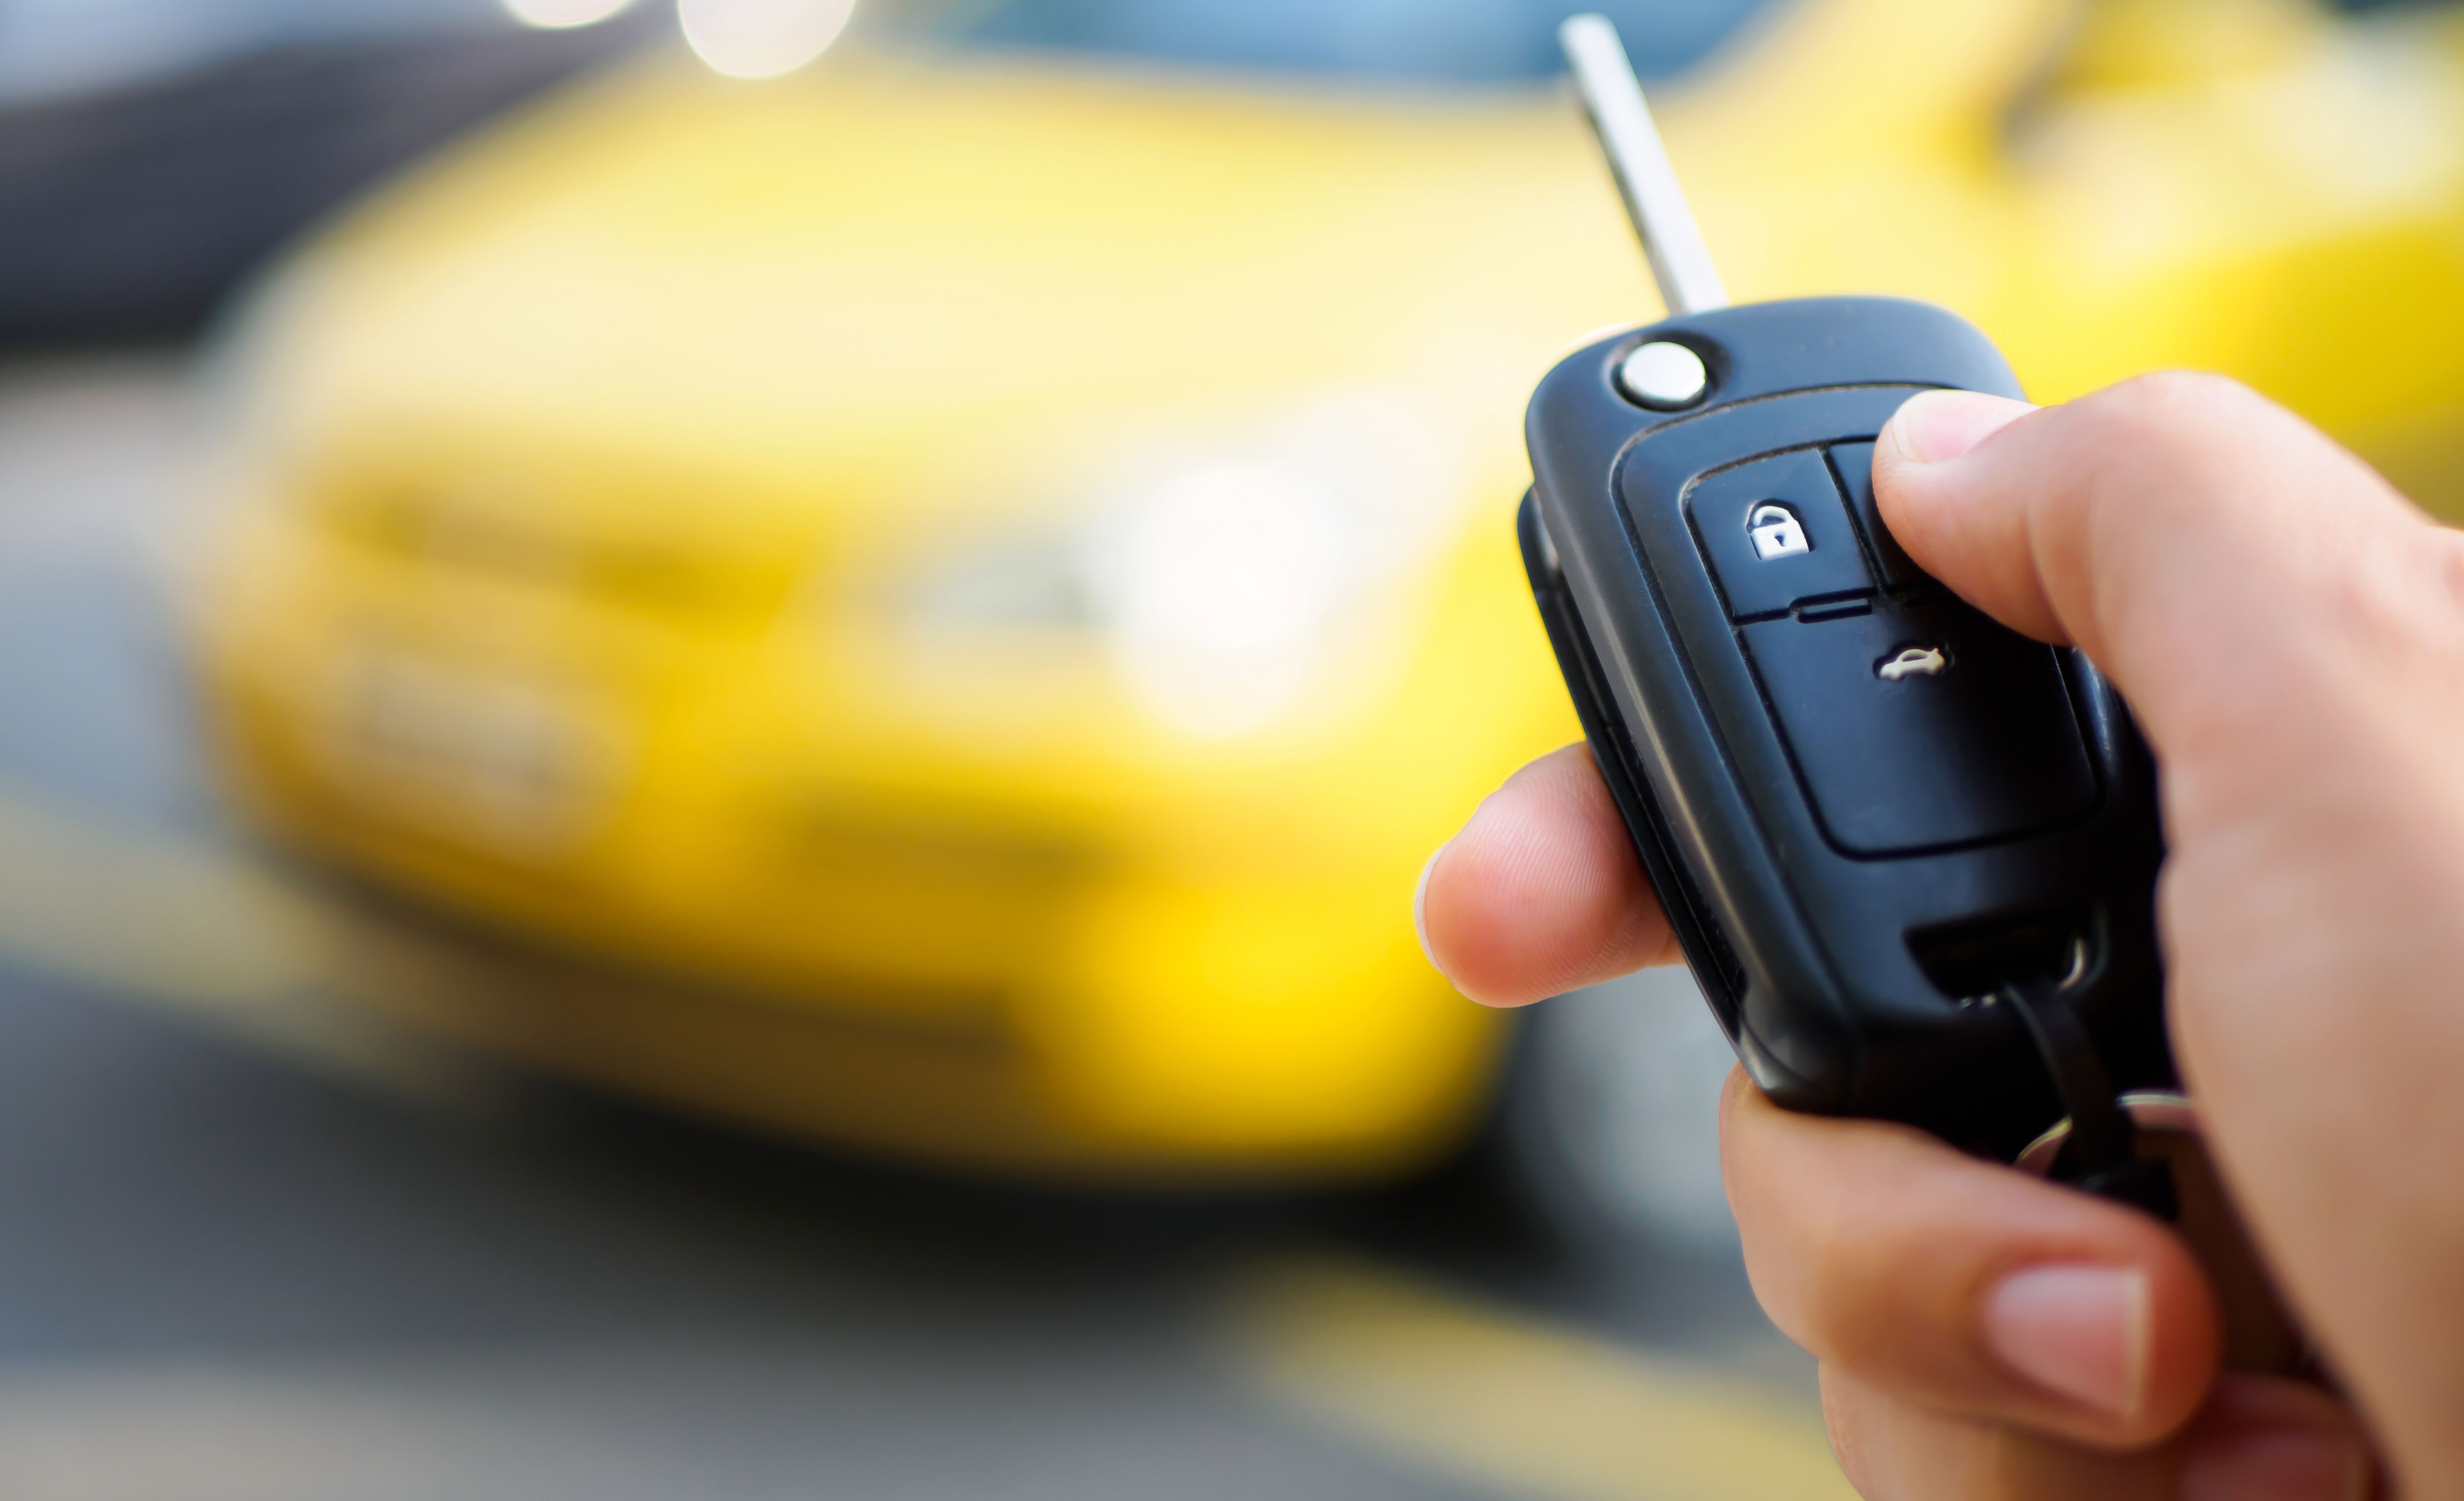 PROFESSIONAL, QUALIFIED AND RELIABLE MOBILE LOCKSMITH